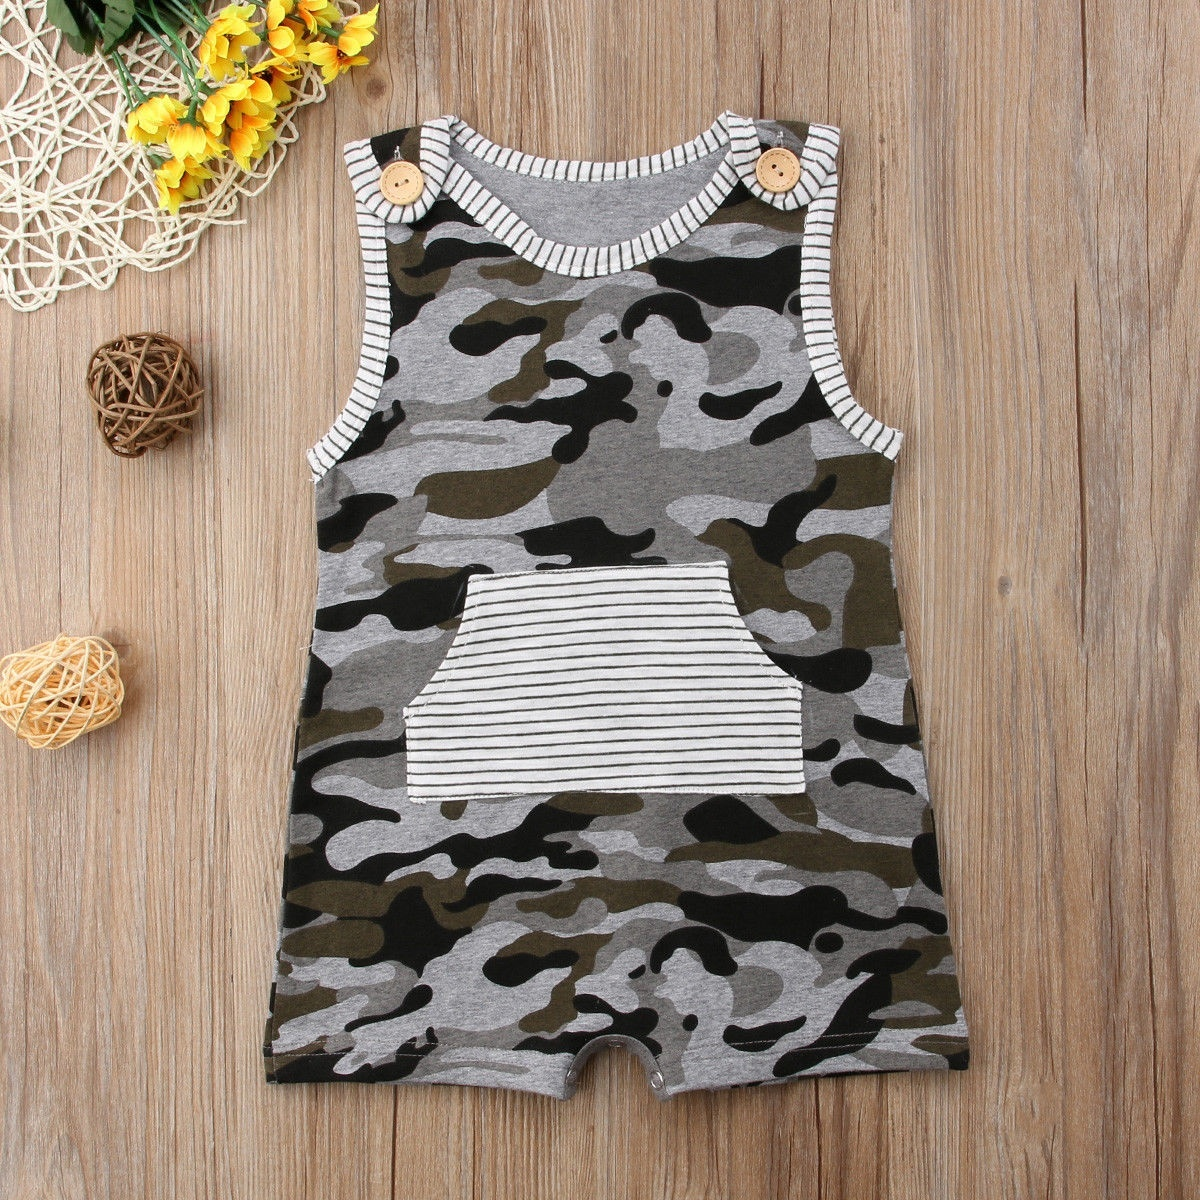 US Newborn Kid Baby Boy Camouflage Clothes Romper Overalls Summer Cotton Outfit